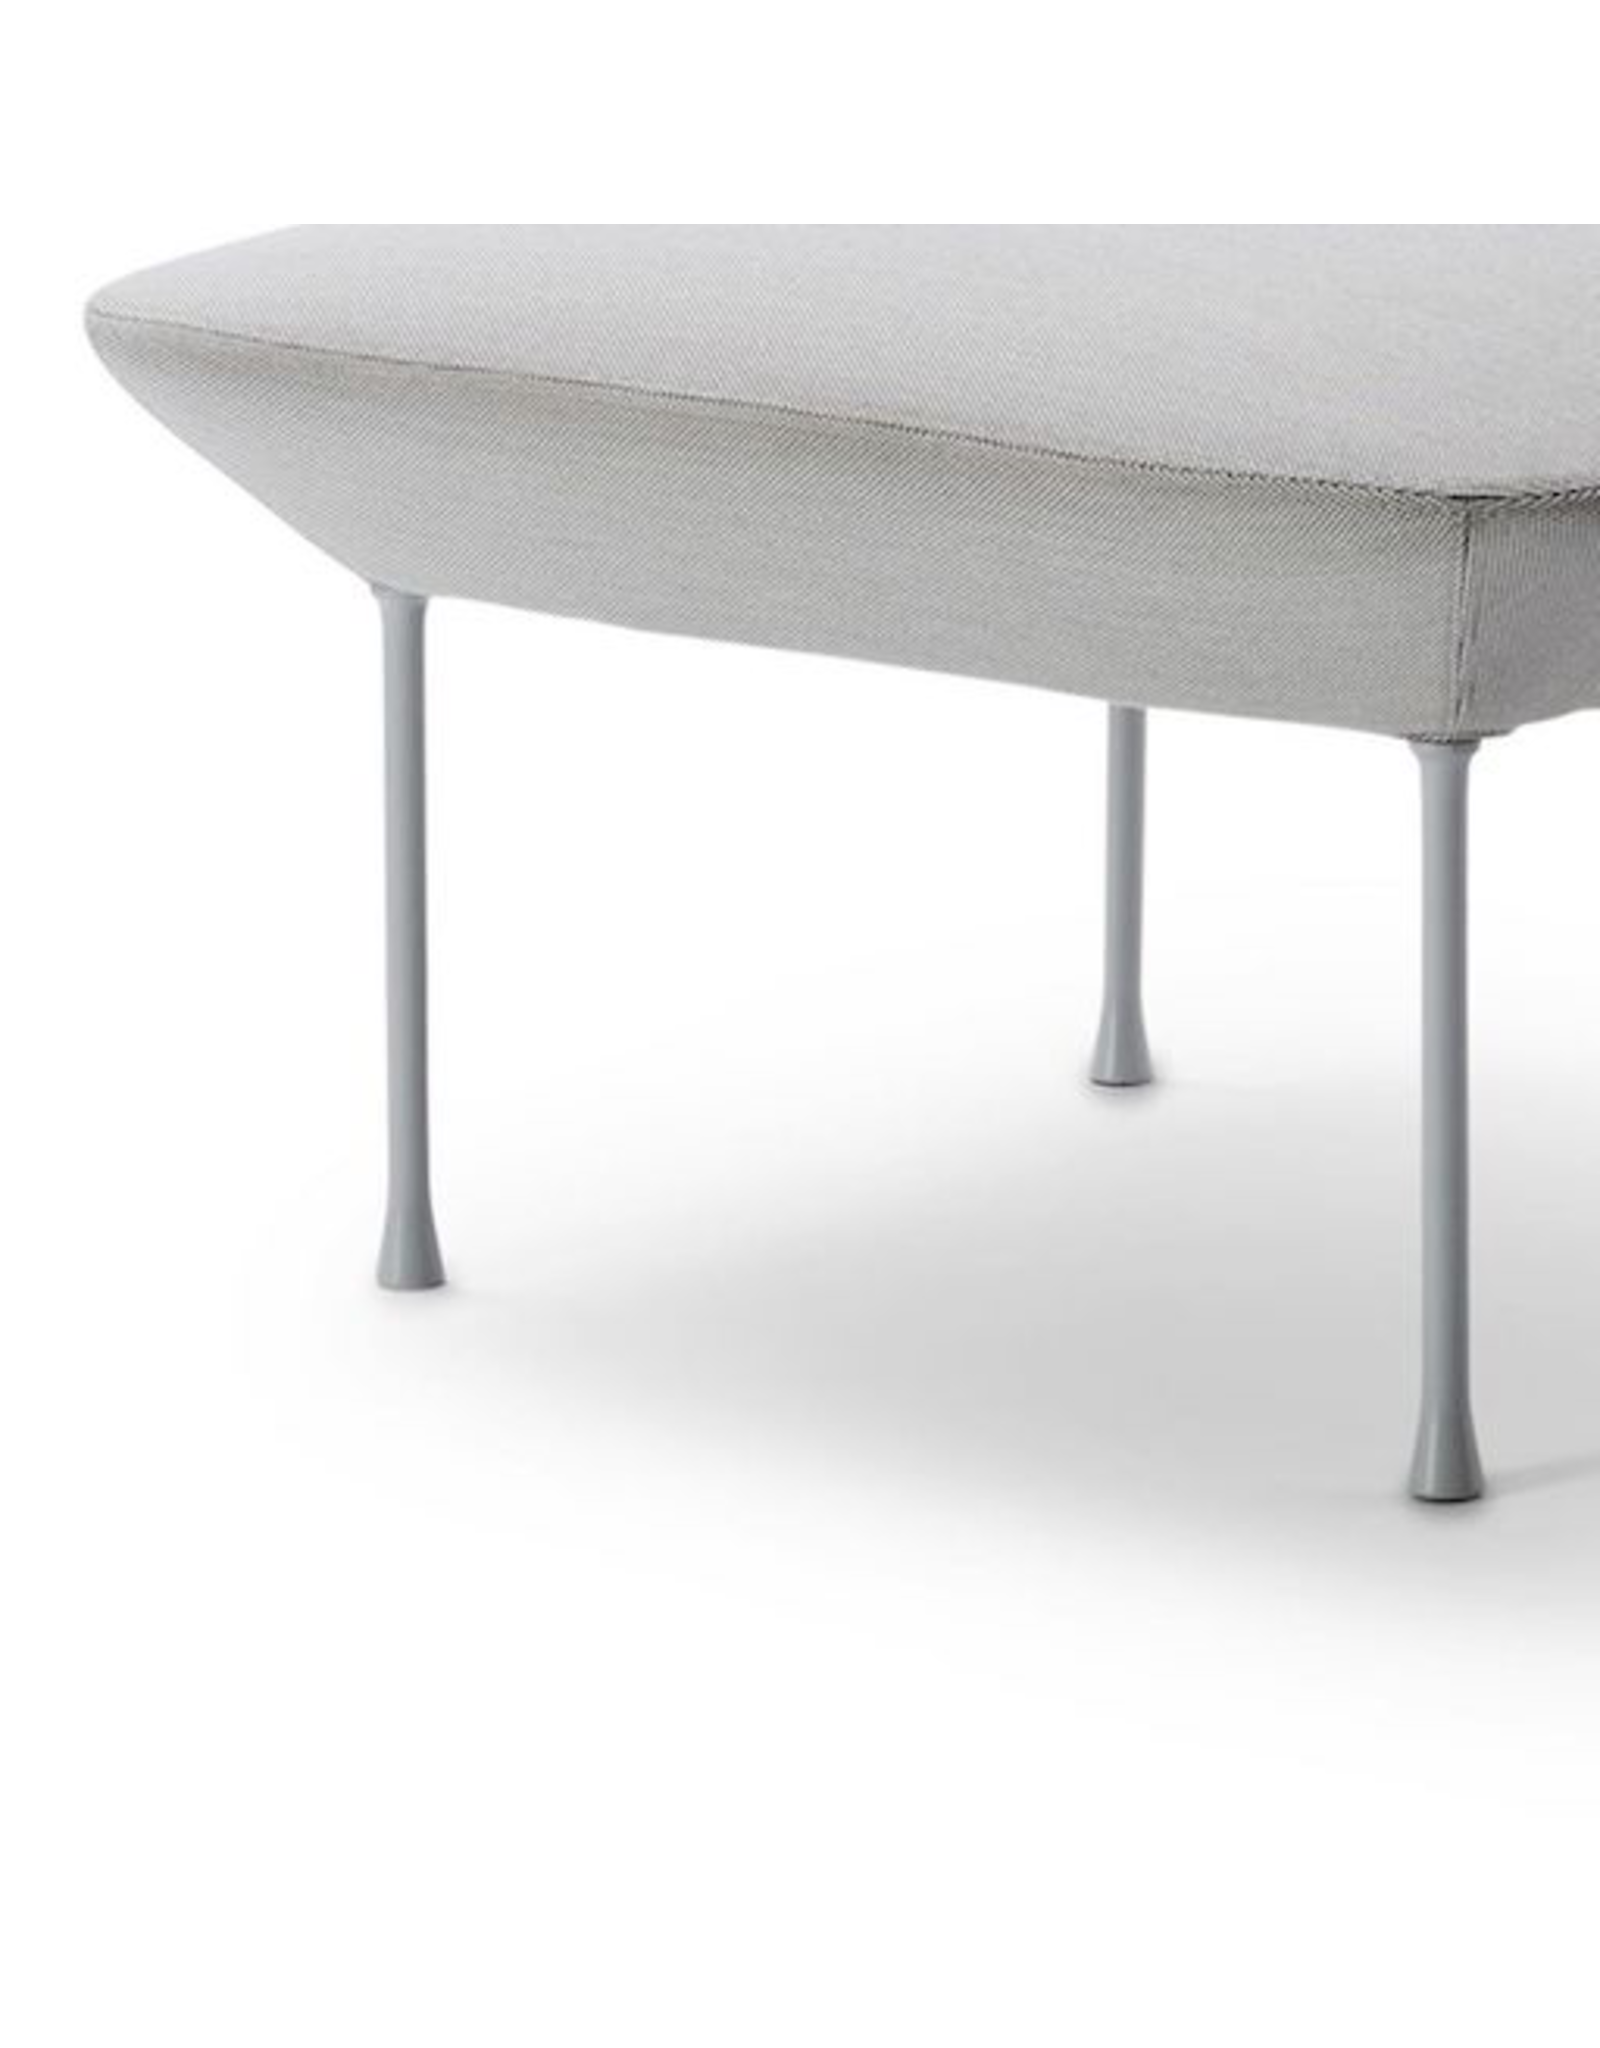 OSLO SOFA - BENCH UPHOLSTERED IN LIGHT GREY FABRIC